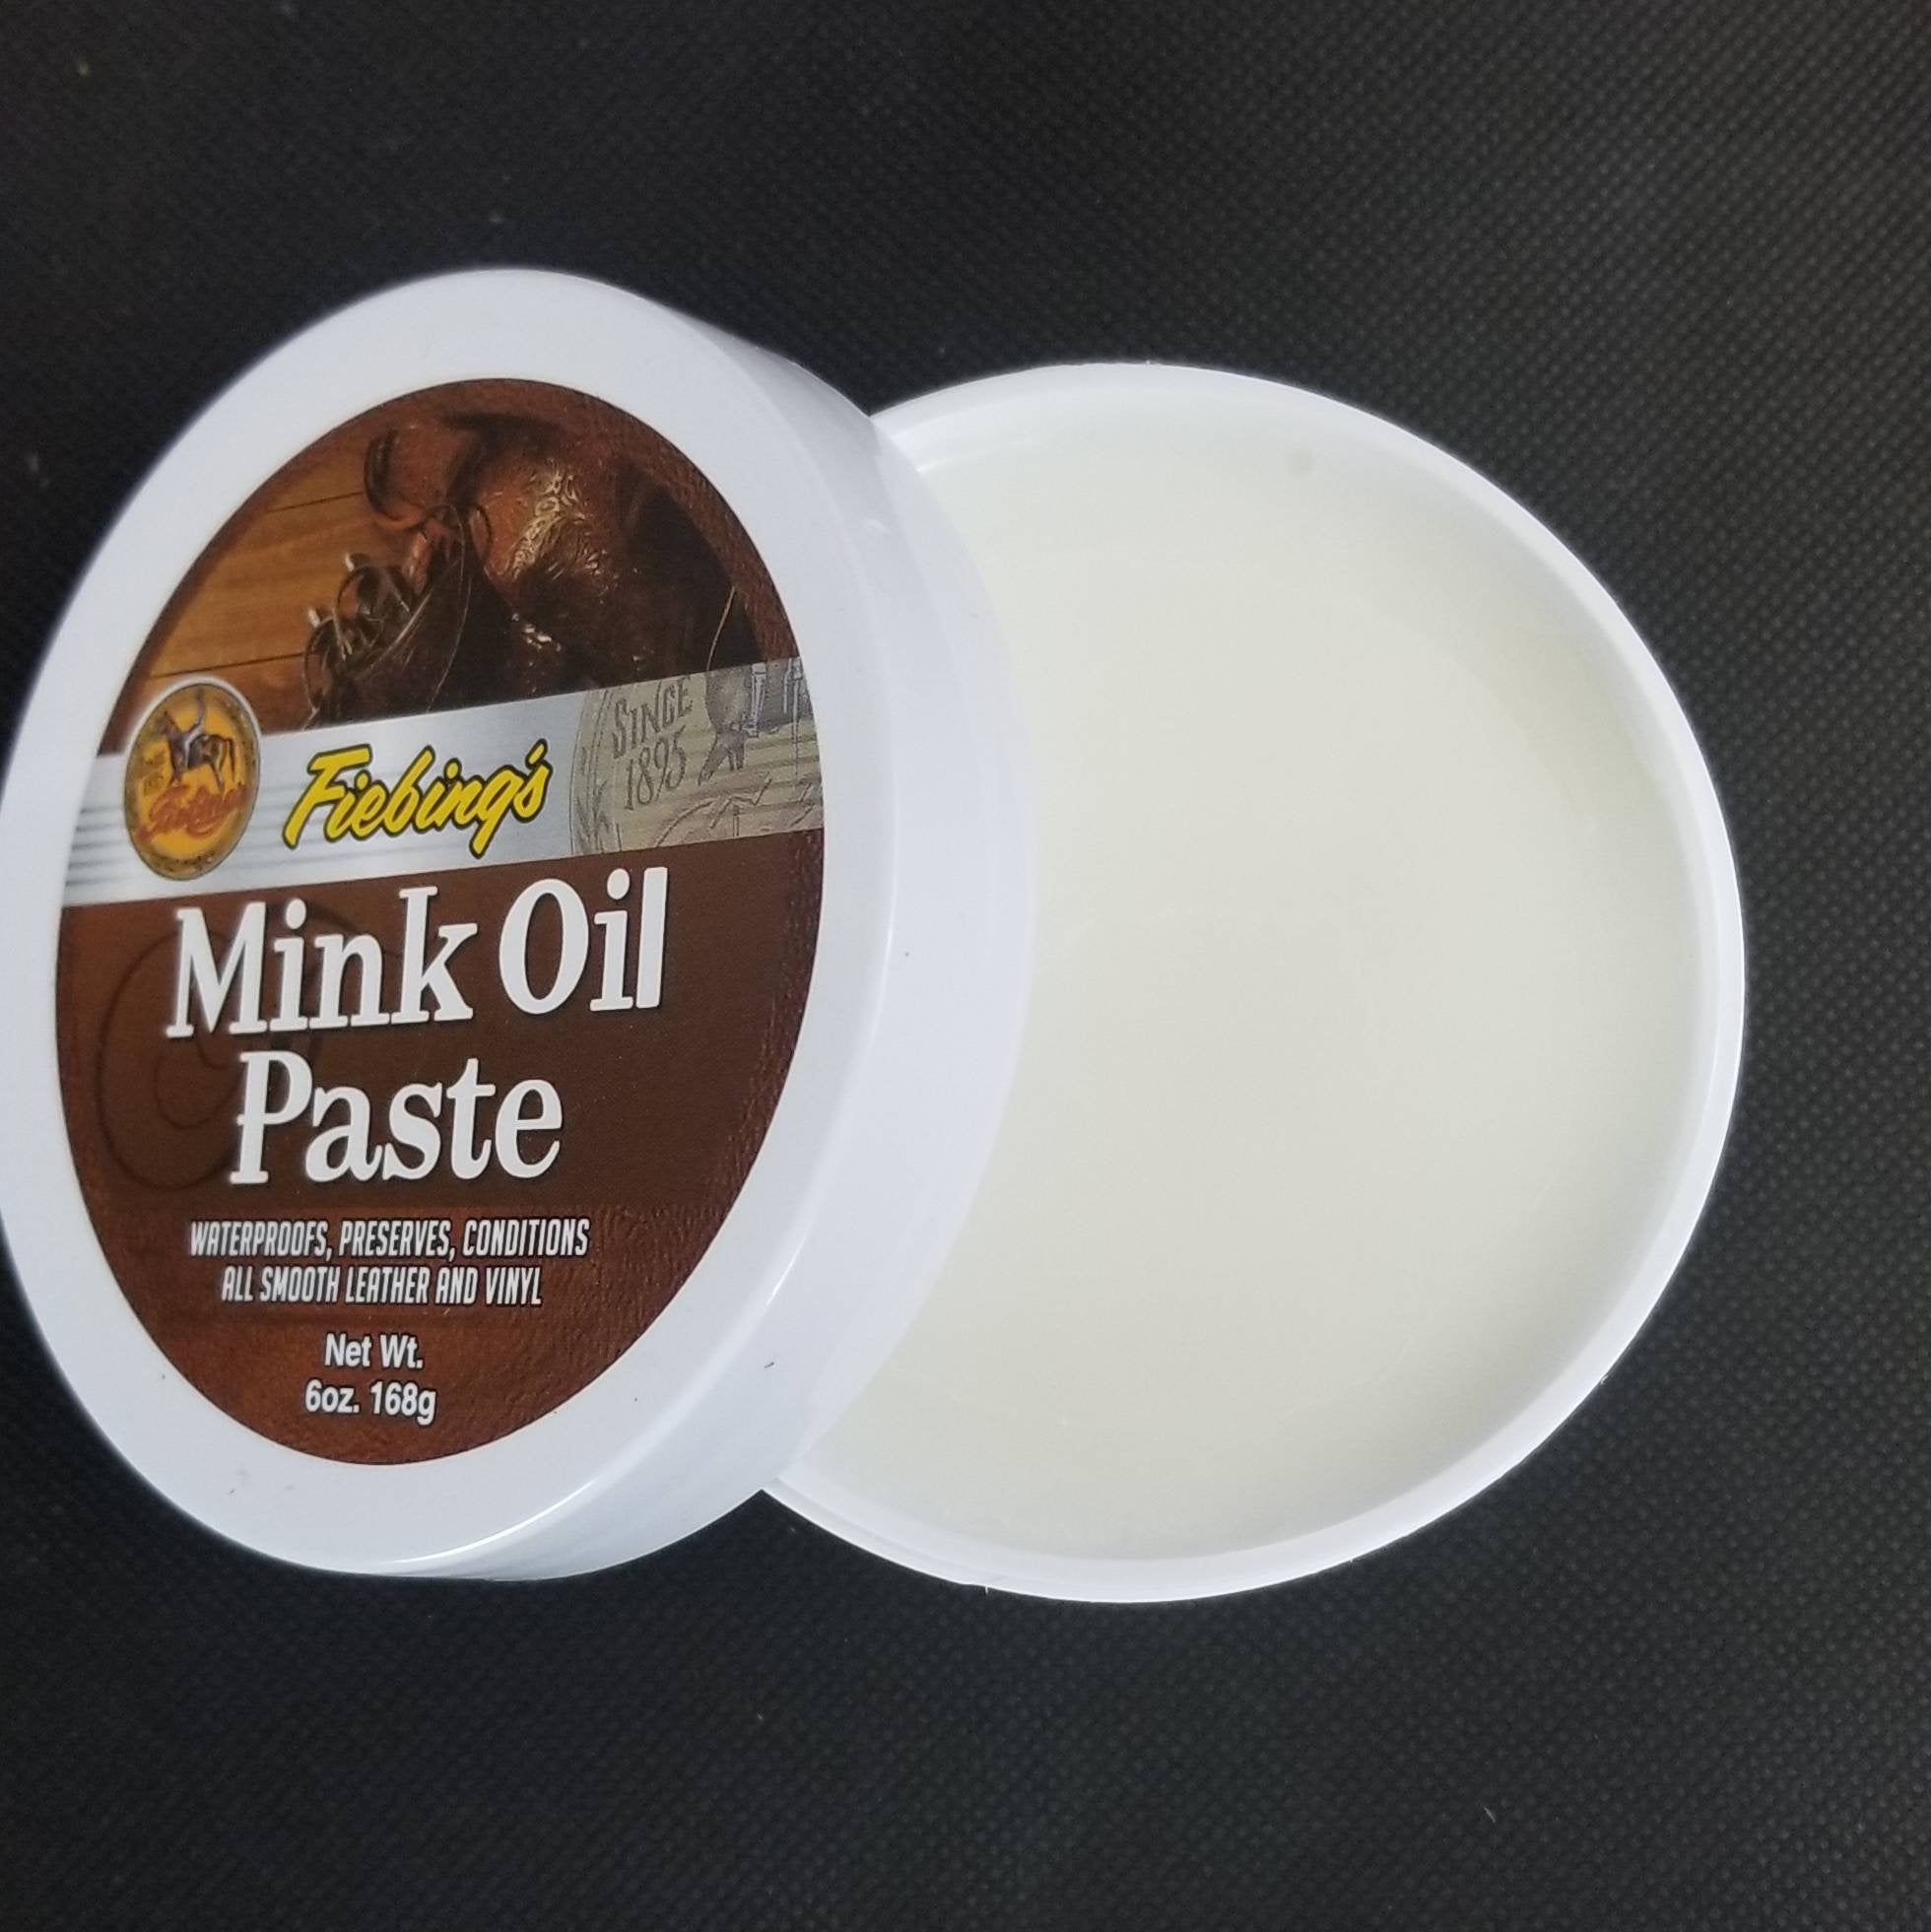 Open tub of Fiebing's mink oil paste shows white paste